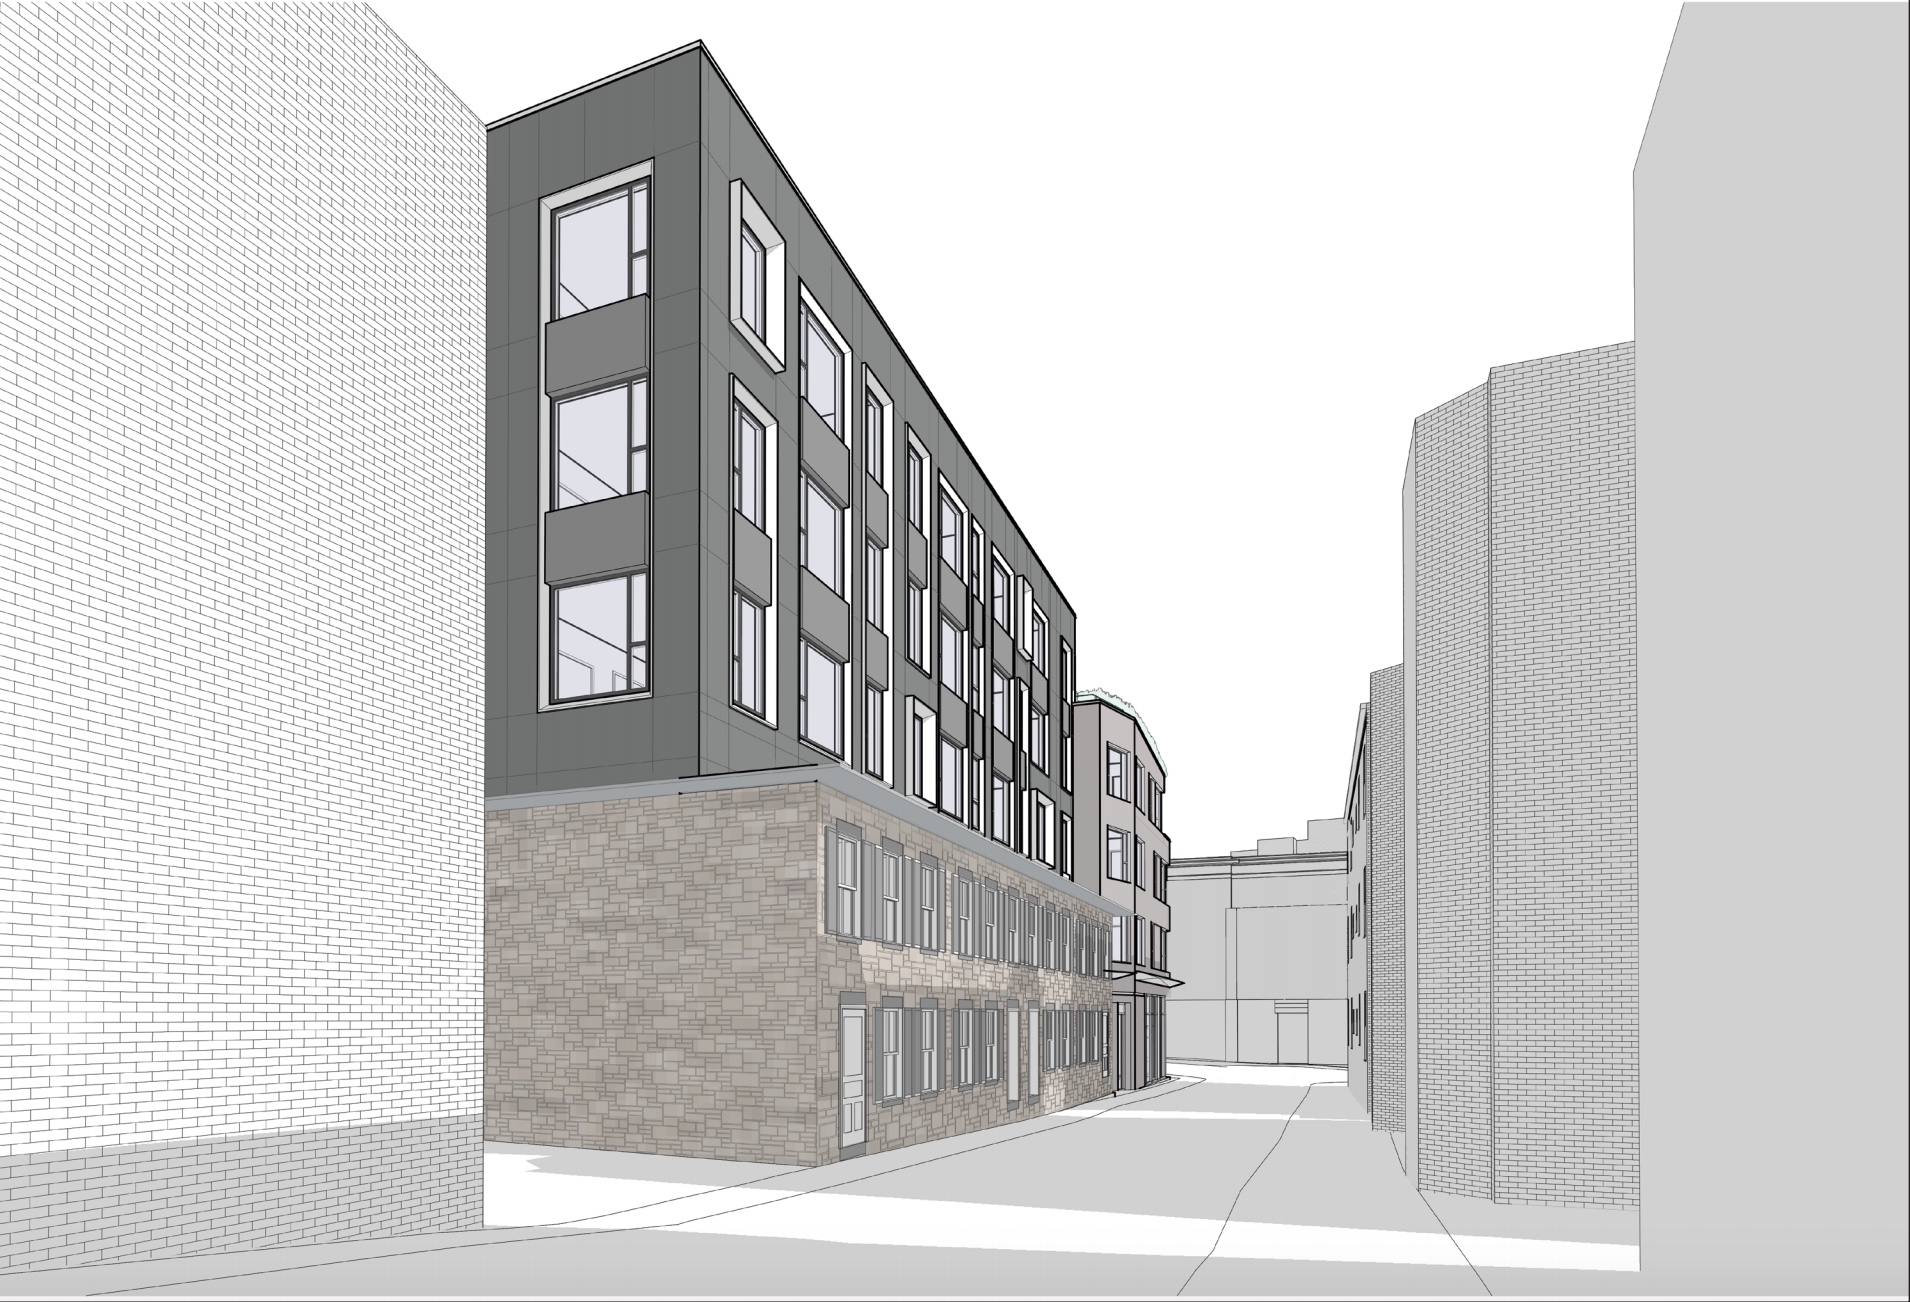 1470 tremont street savage properties residential retail mixed use development mission hill roxbury mbta orange line architect hacin associates rendering 1